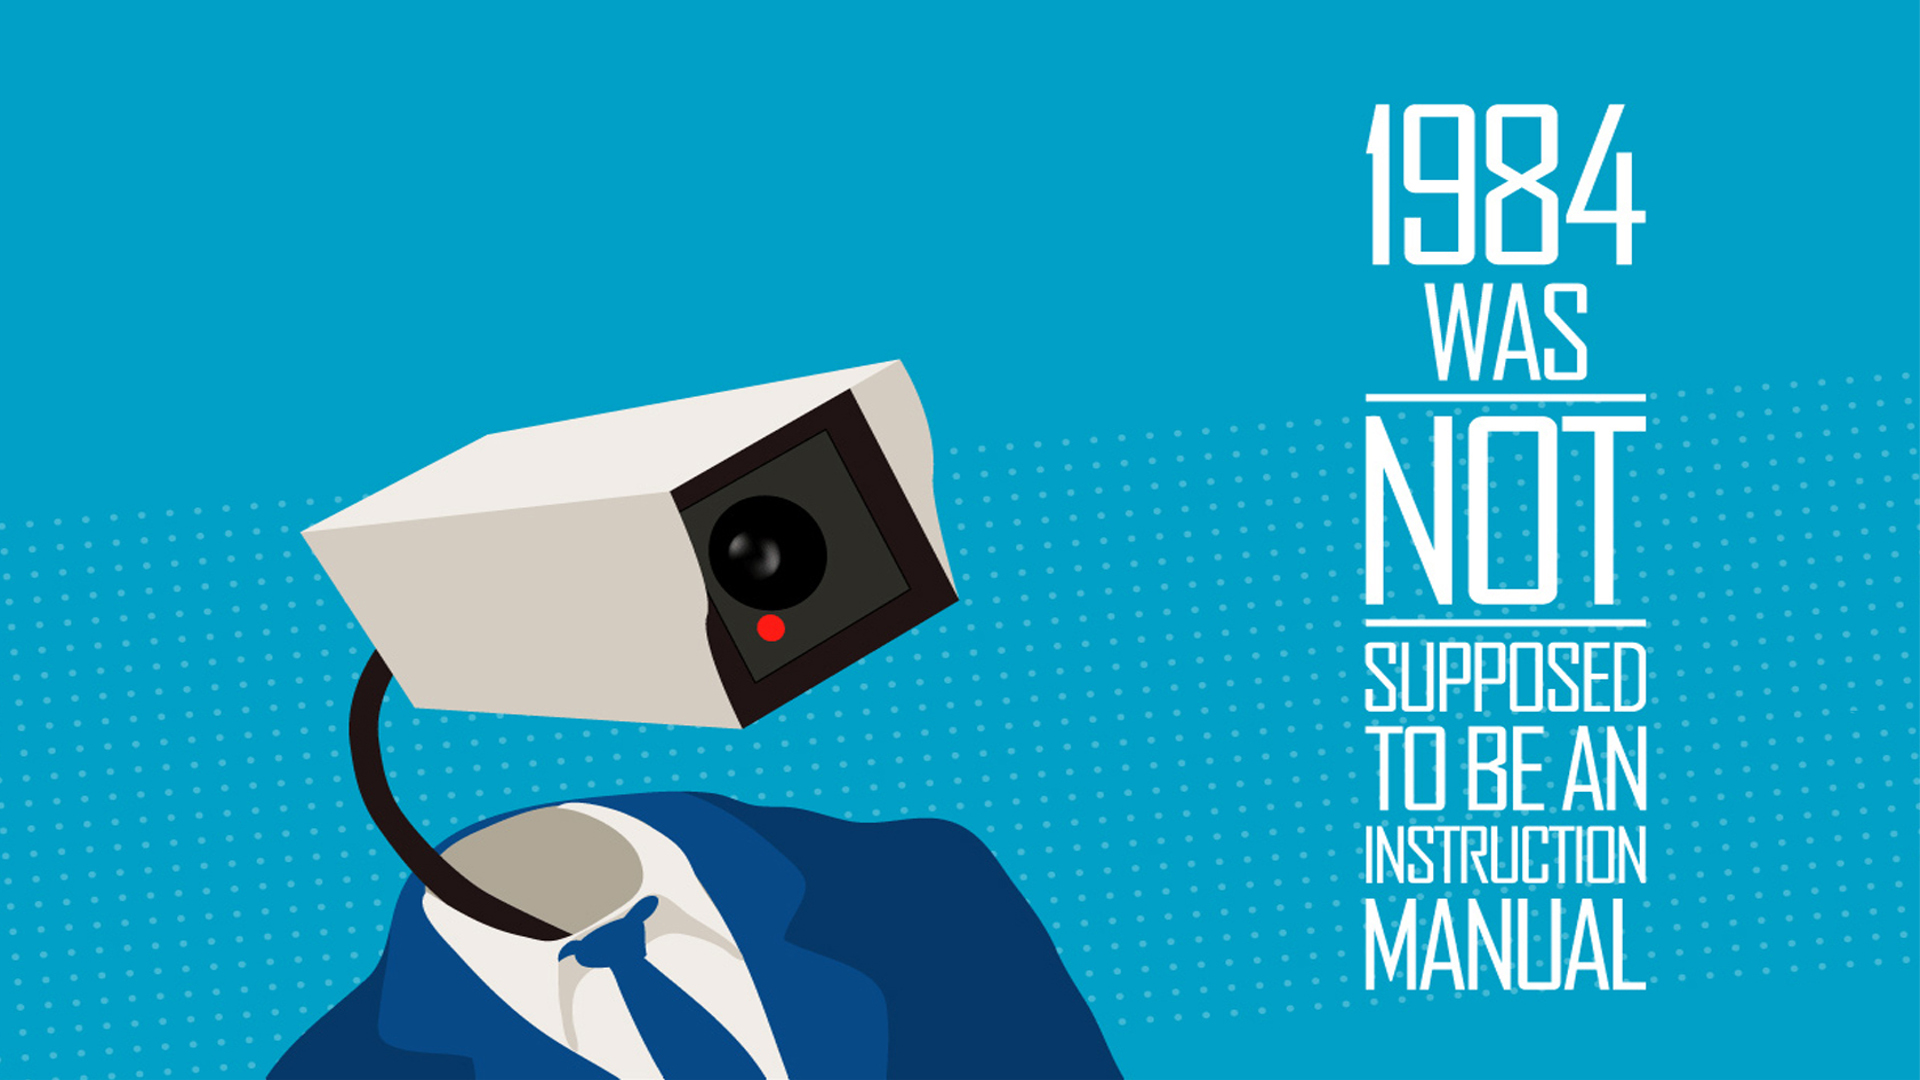 1984-was-not-supposed-to-be-an-instruction-manual-31725